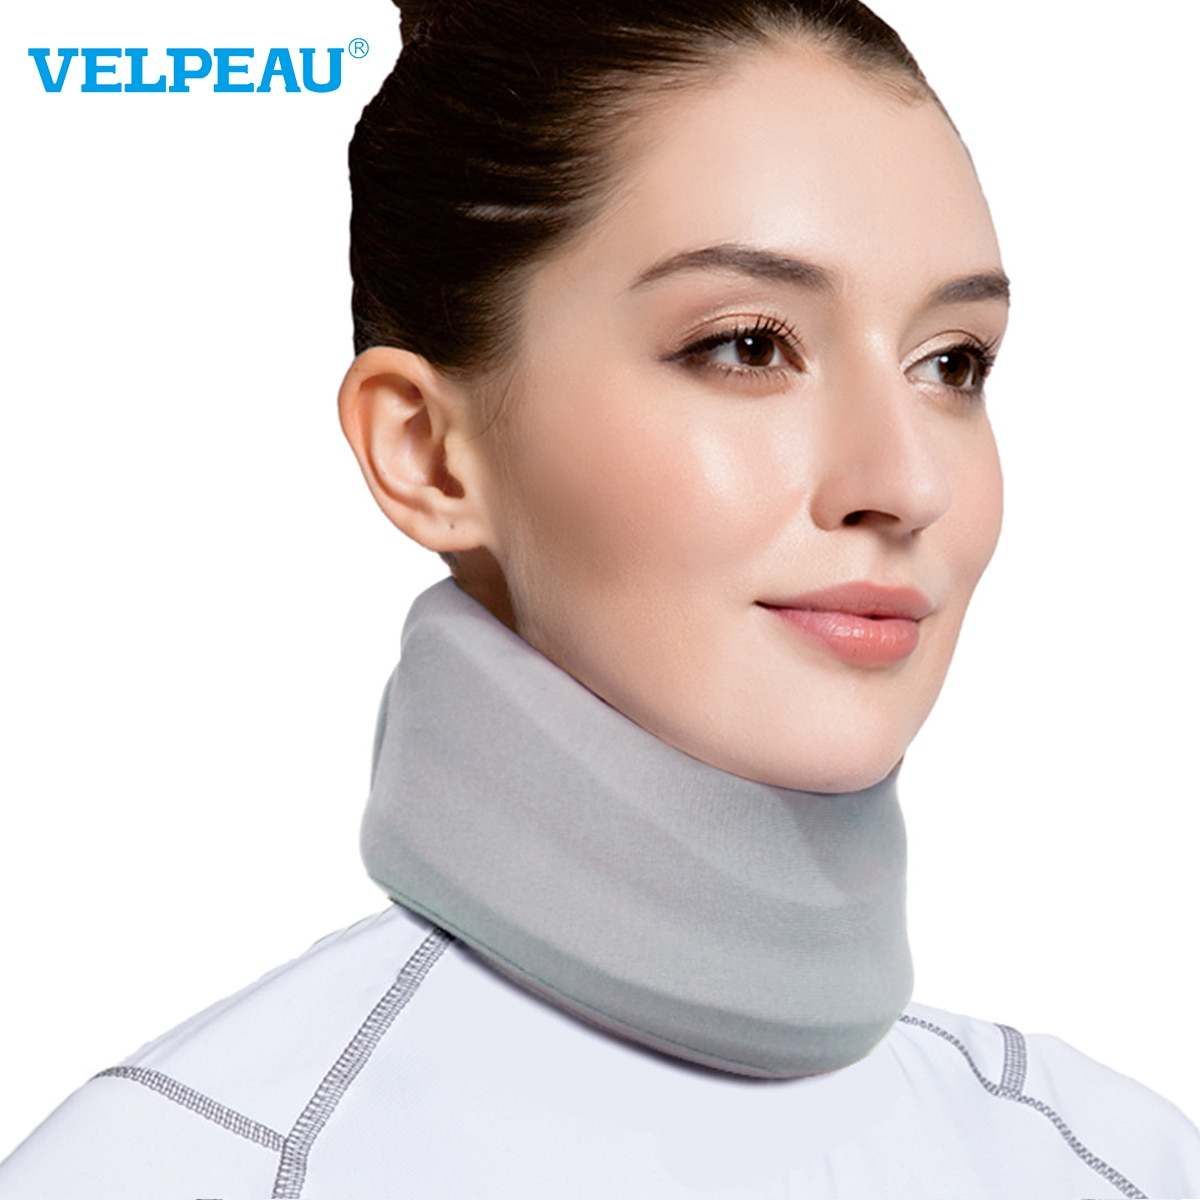 VELPEAU Neck Brace for Neck Pain and Support Soft Cervical Collar for Sleeping Cervical Decompressio